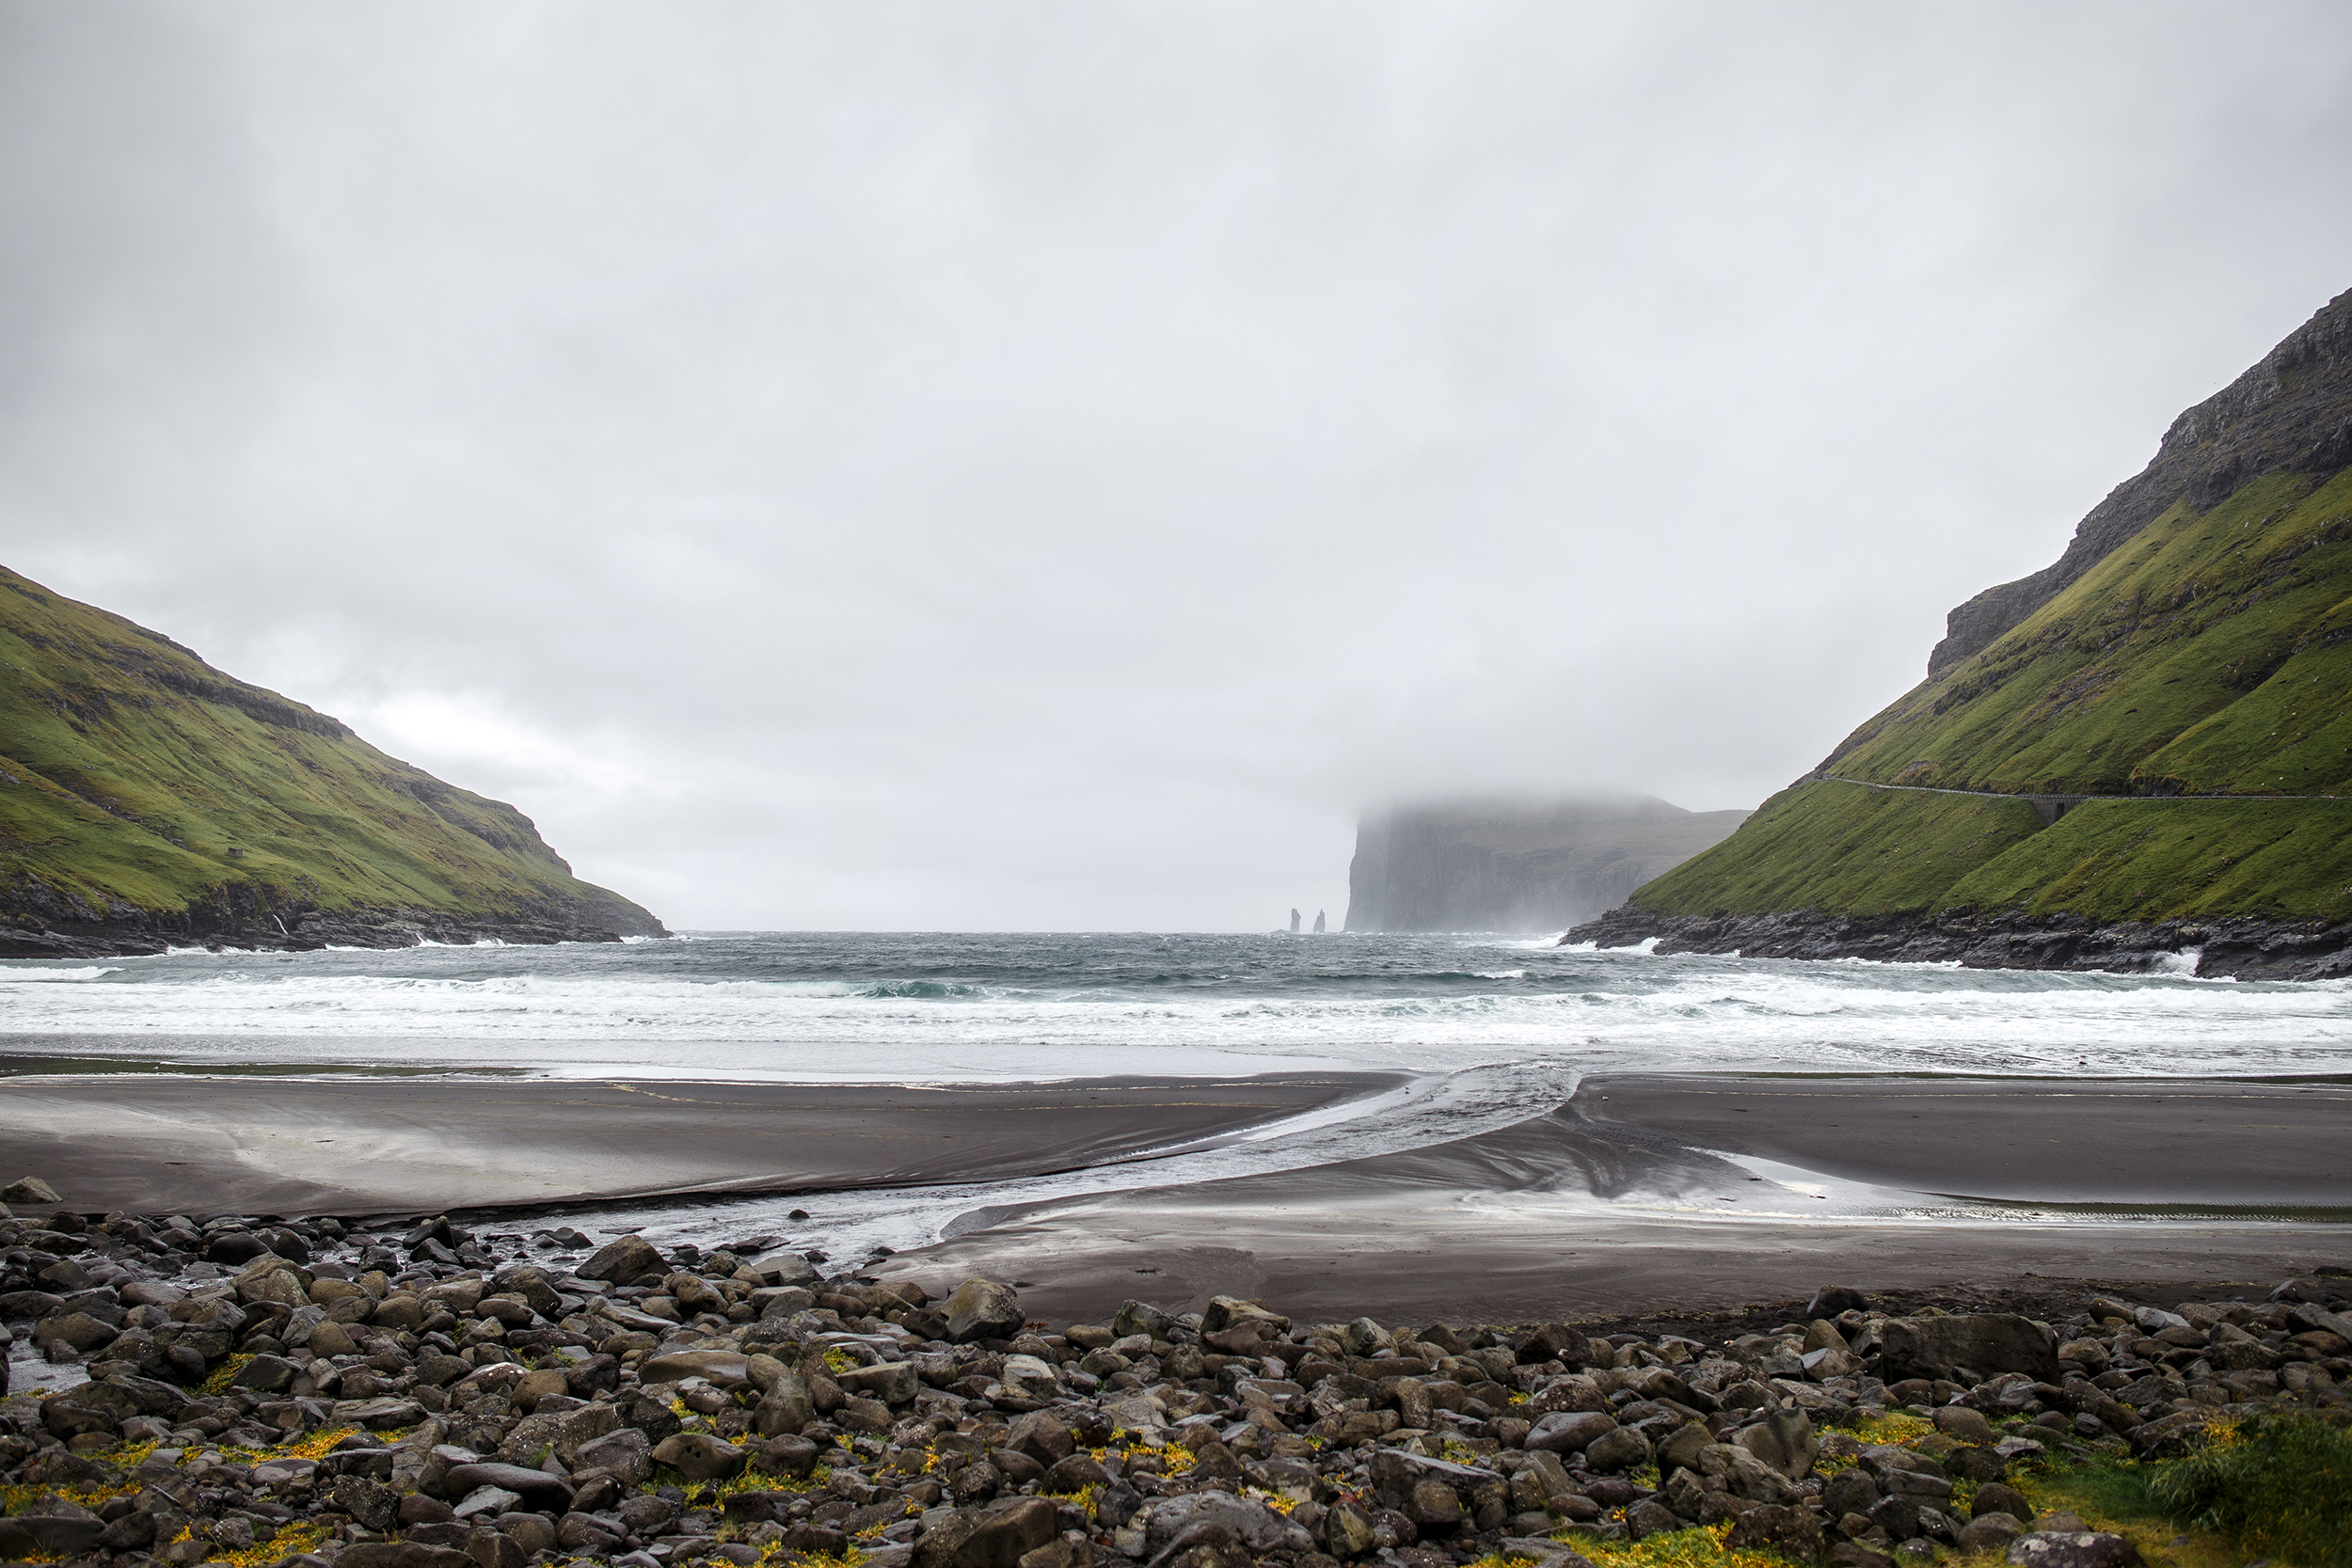 Tjørnuvík bay on Streymoy in the Faroe Islands